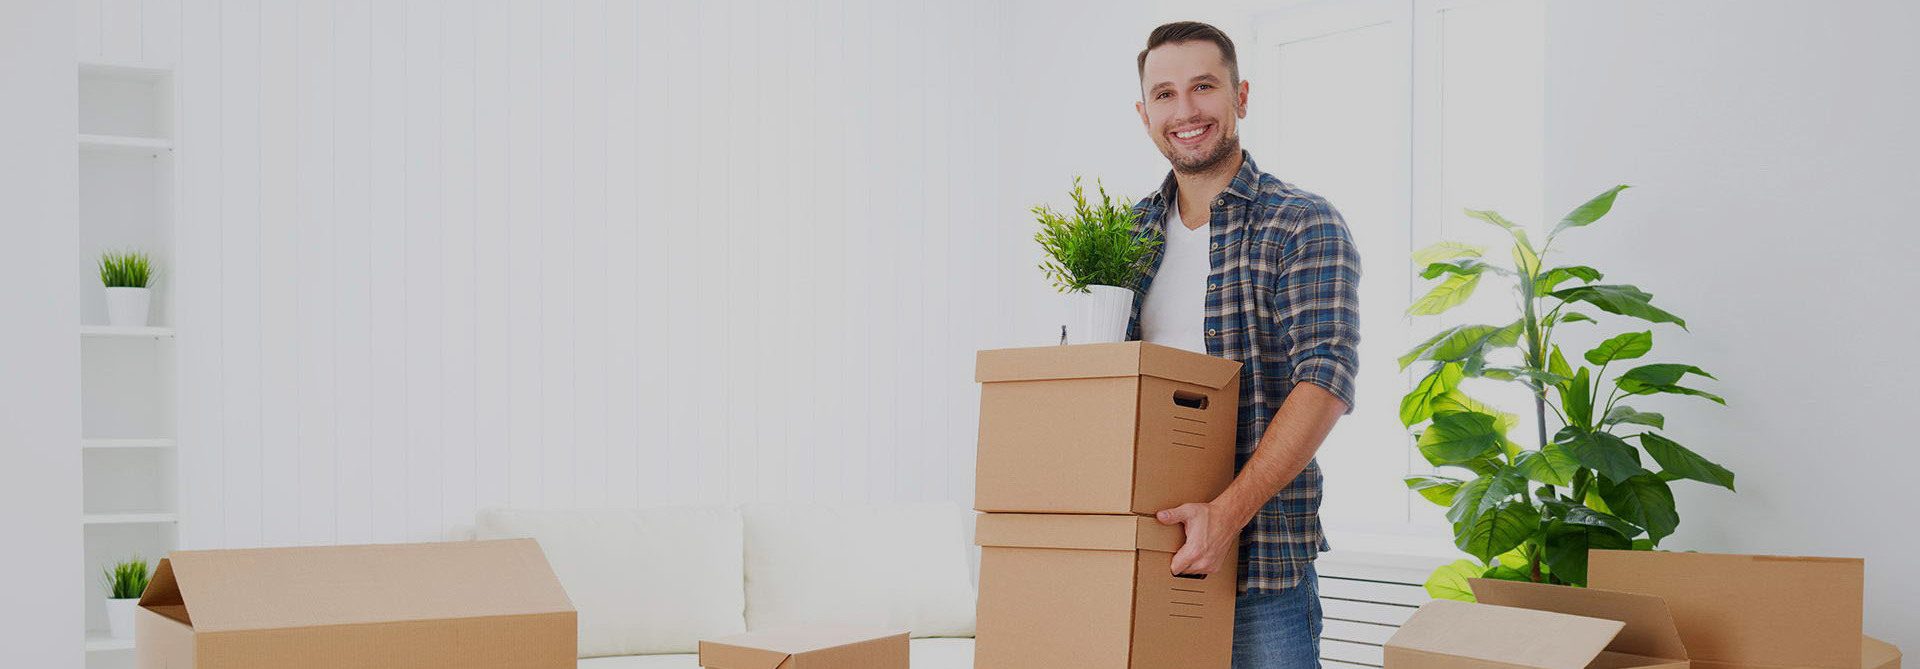 Packers and movers for Corporate shifting services